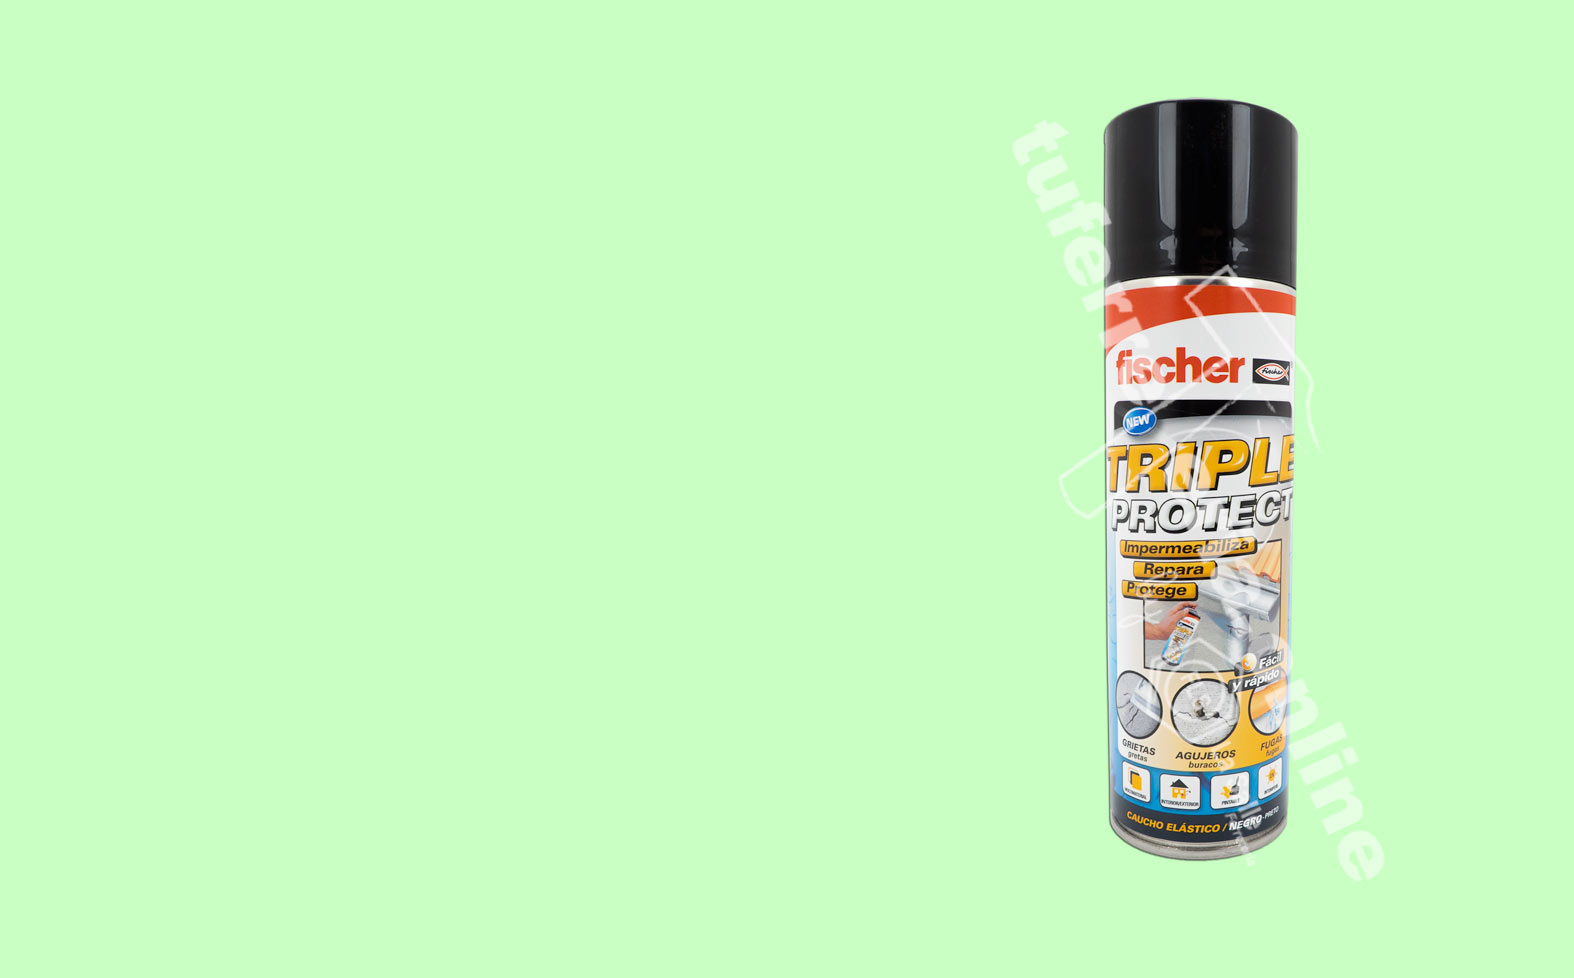 SPRAY-IMPERMEABILIZANTE TRIPLE PROTECT FISCHER